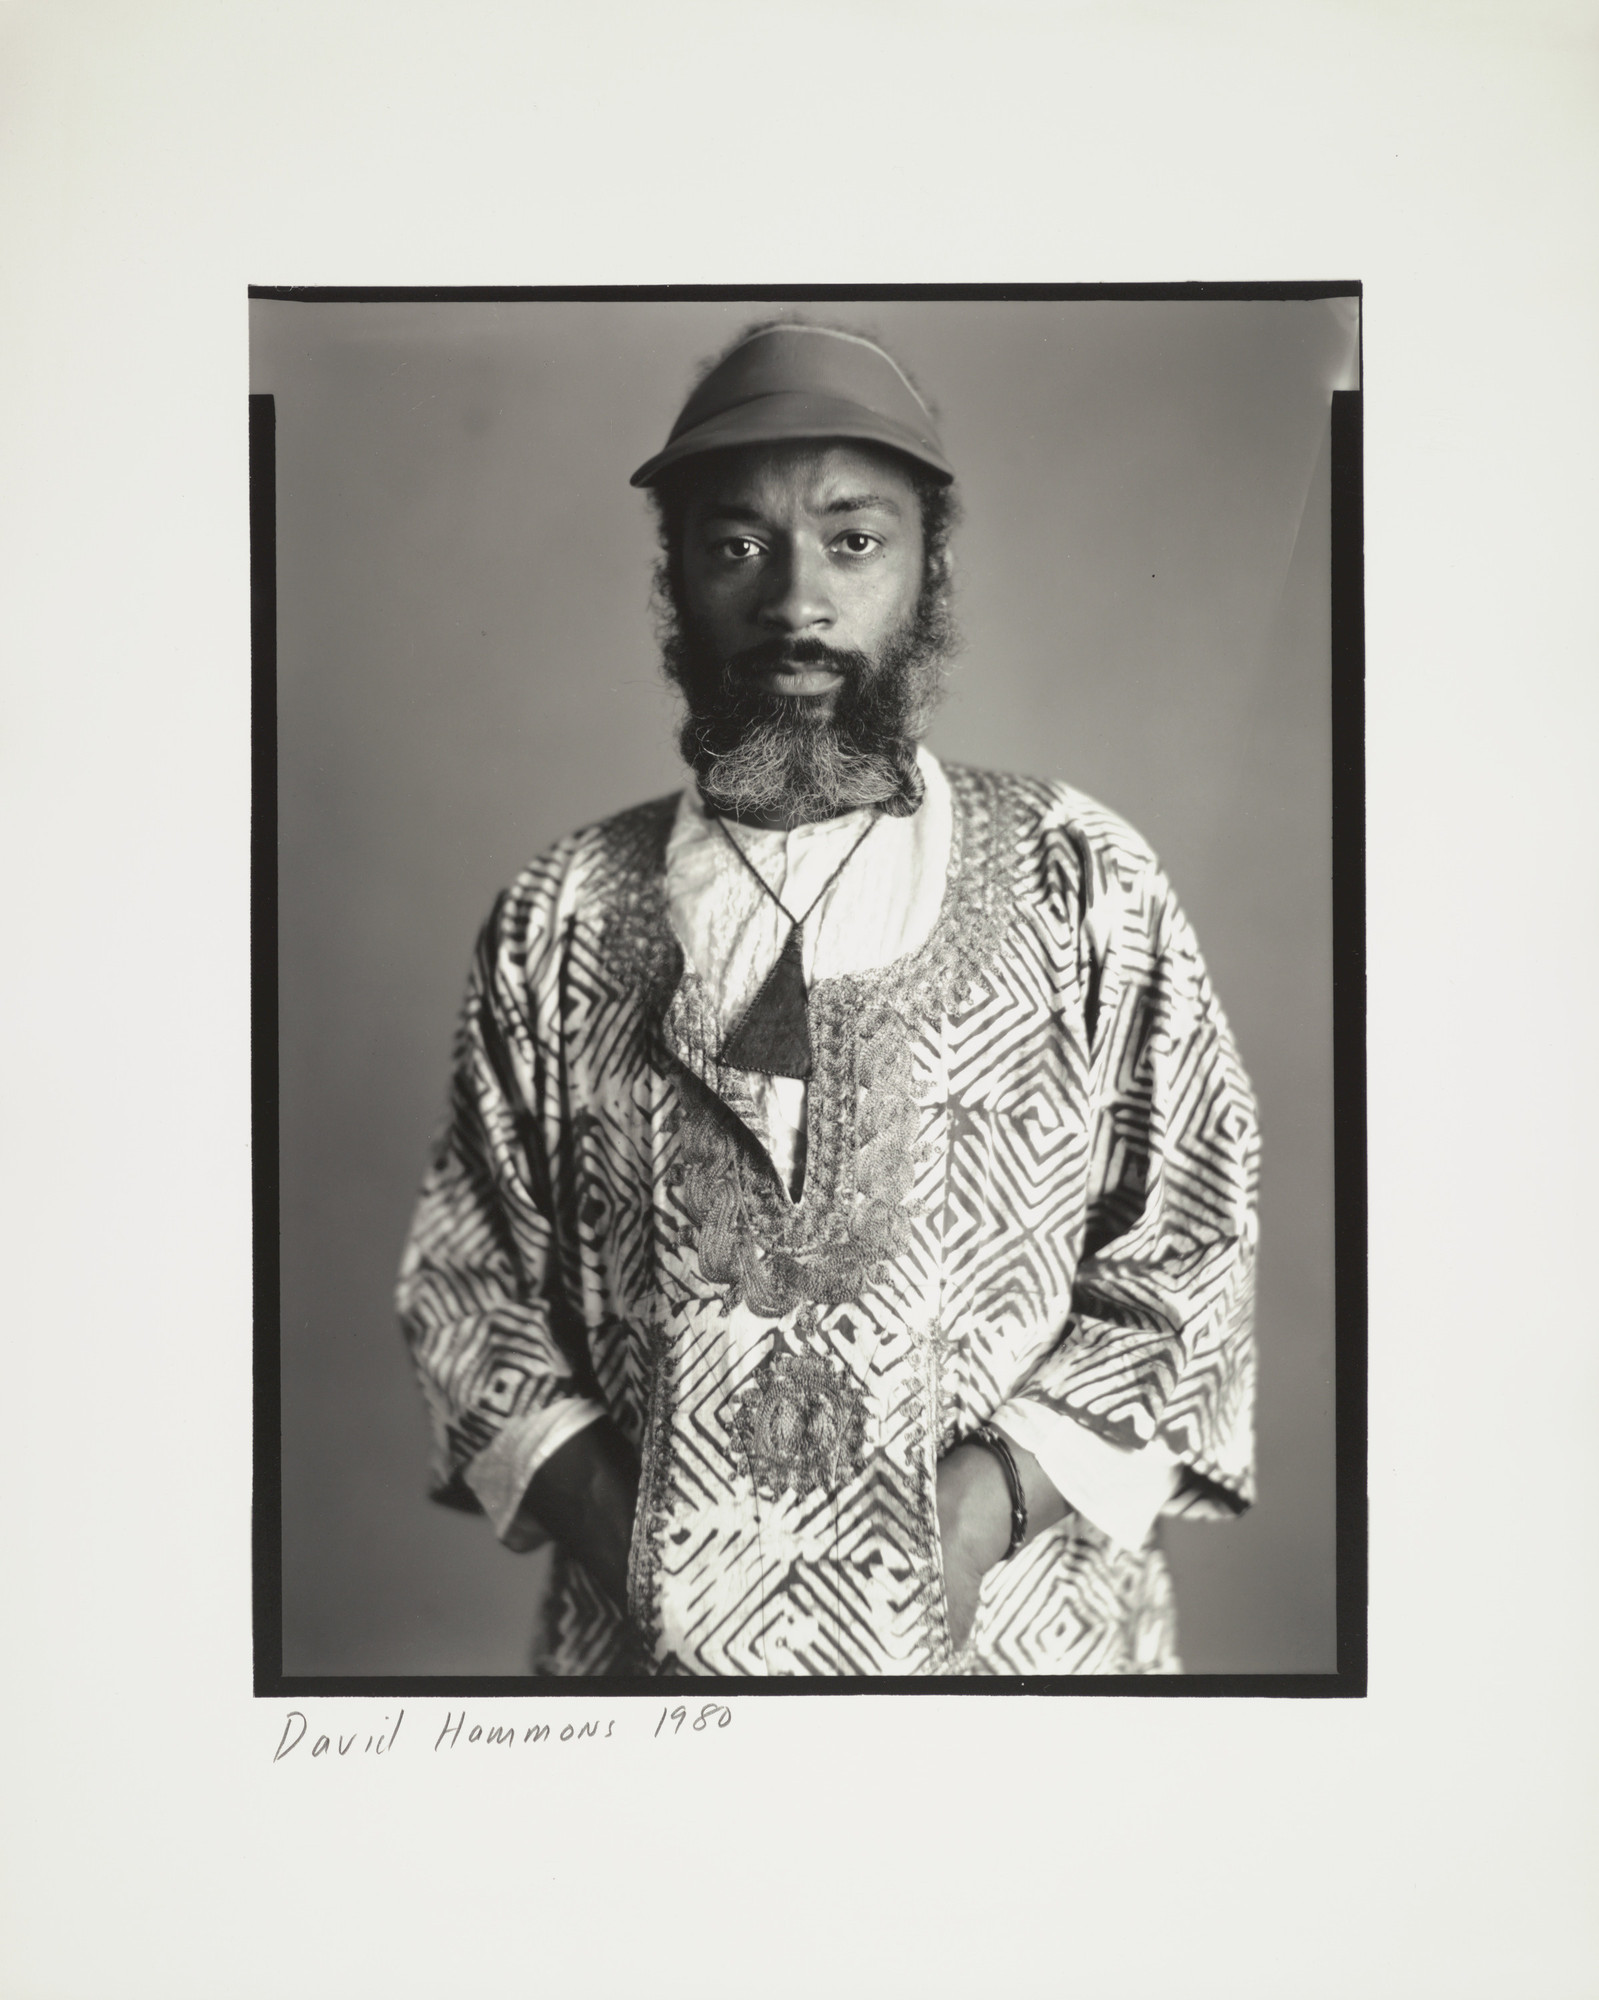 David hammons portrait